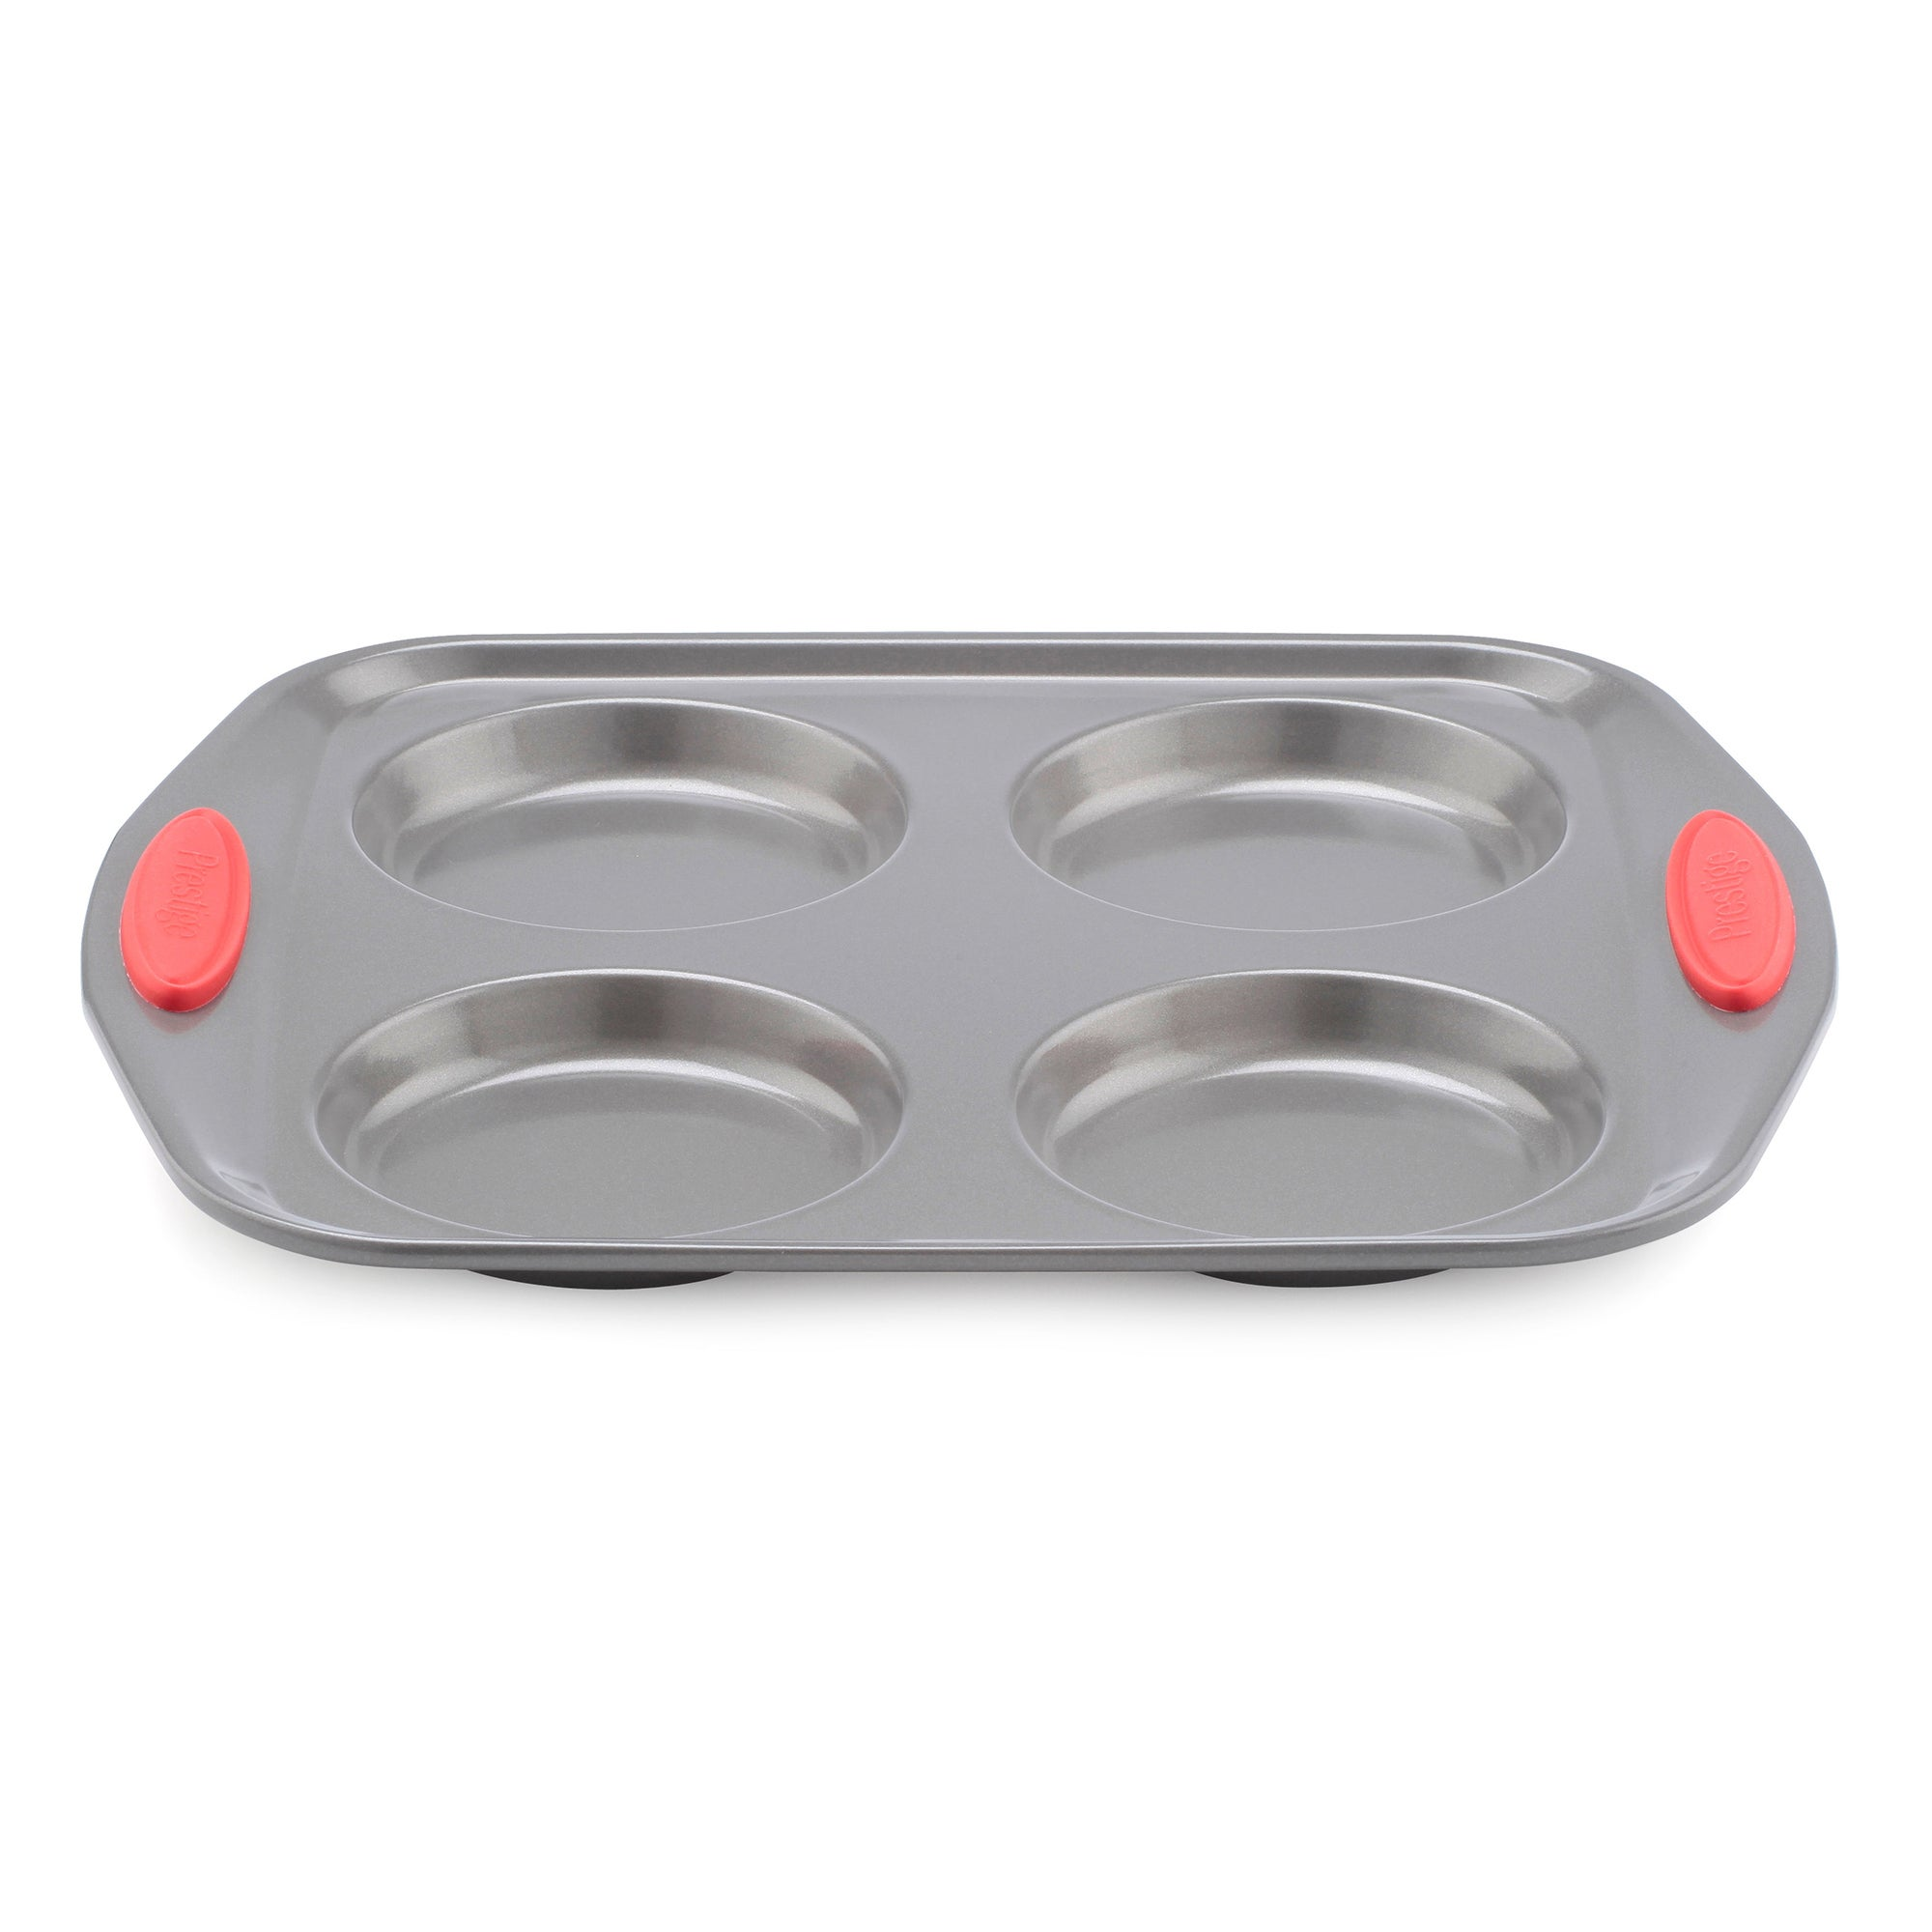 Prestige Create 4 Cup Yorkshire Pudding Tray